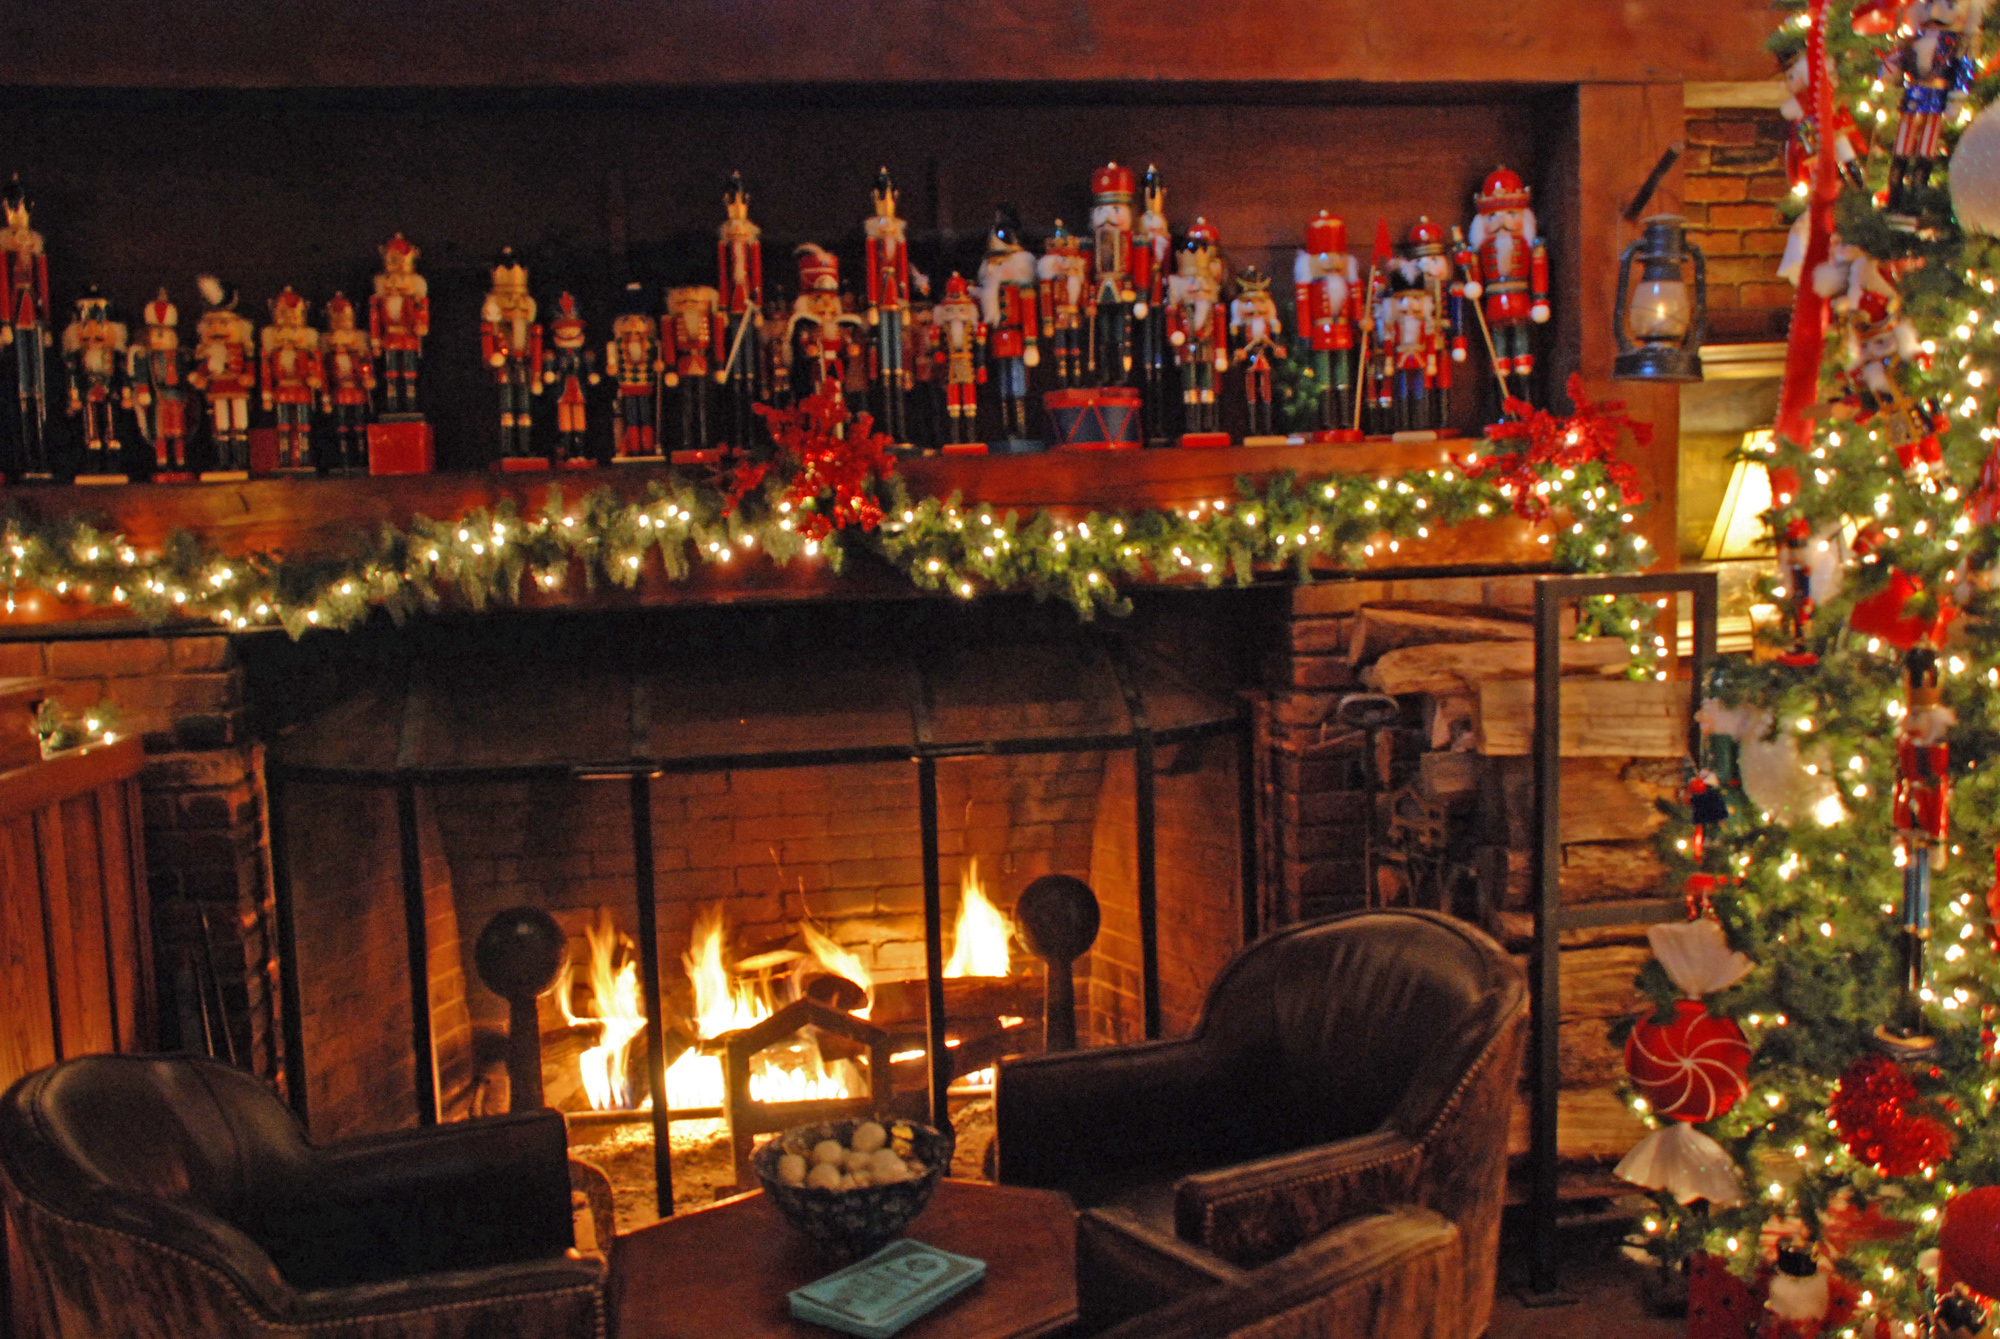 christmas fireplace fire holiday festive decorations g wallpaper 2000x1339